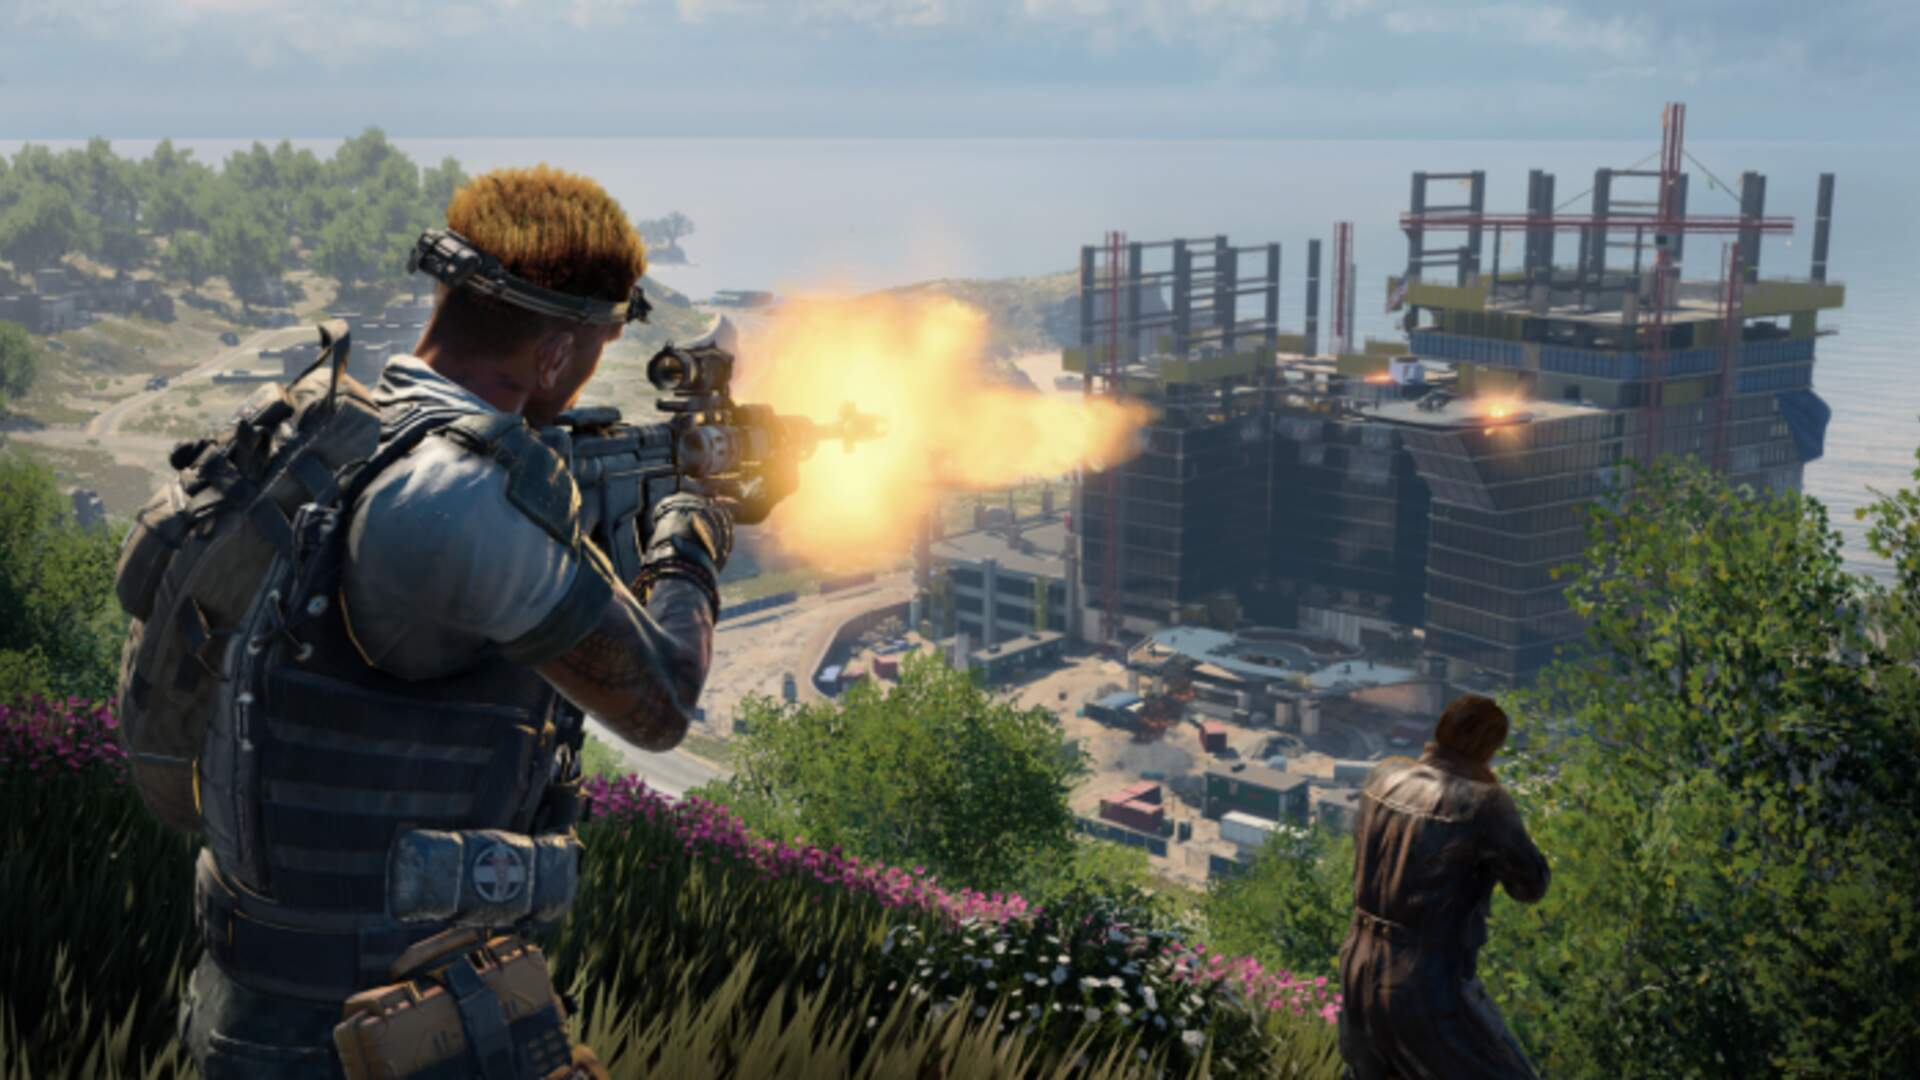 Call of Duty: Black Ops 4 Blackout Battle Royale Beta Extended for Another Hour, Max Player Count Raised to 100